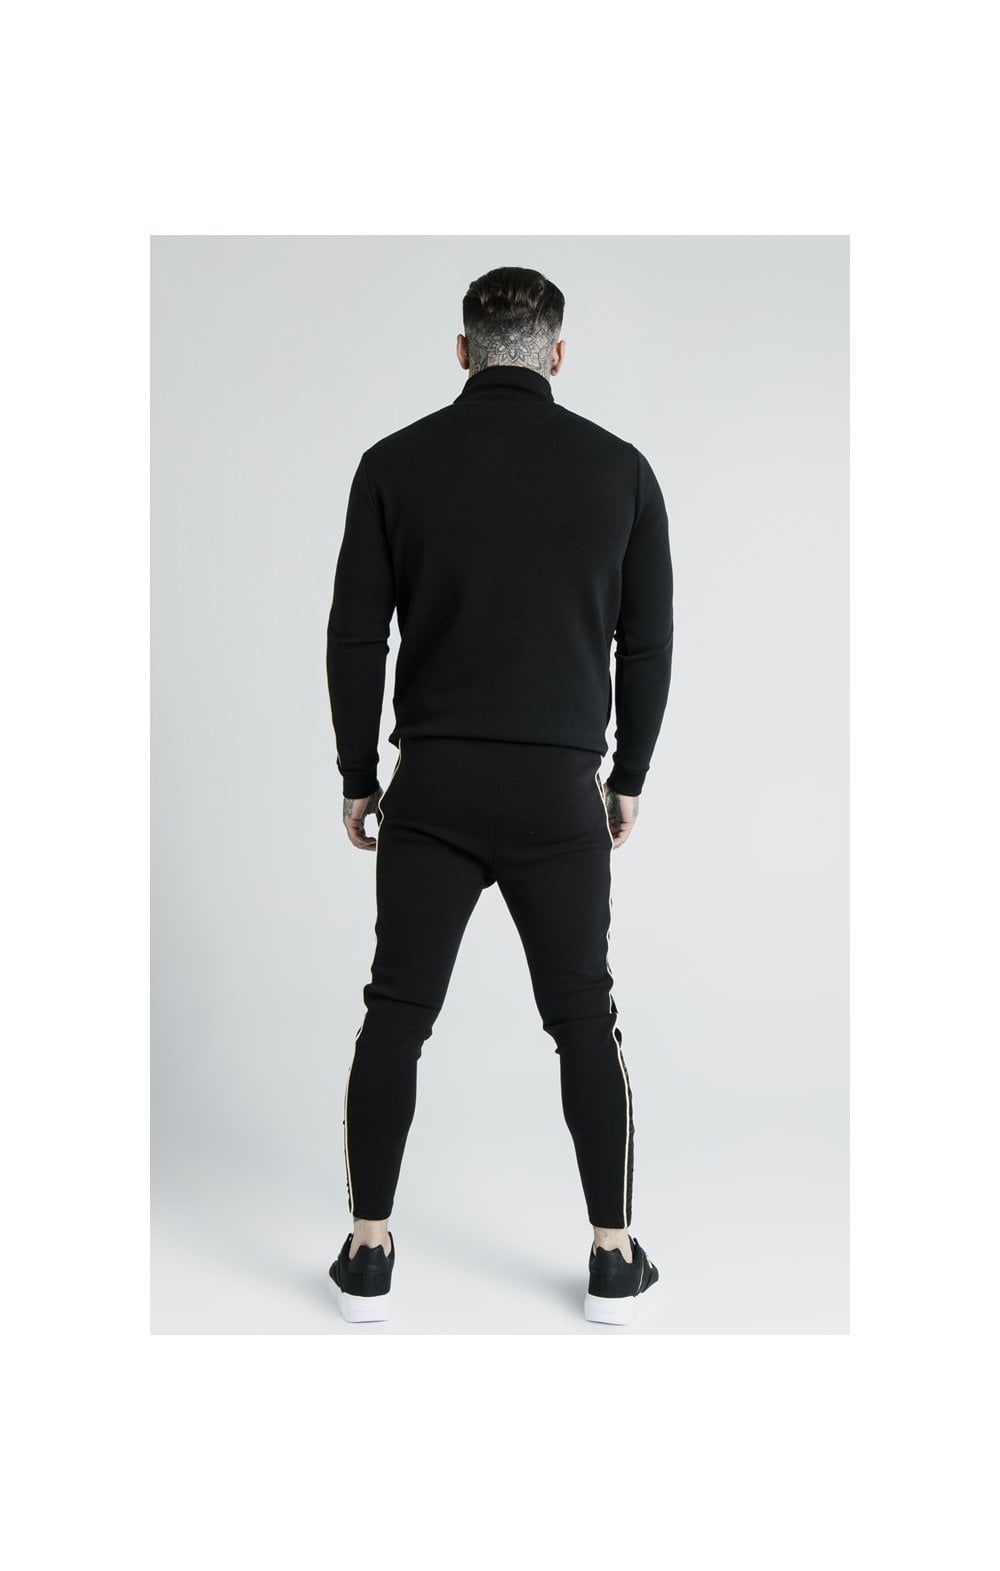 Load image into Gallery viewer, SikSilk x Dani Alves Quarter Zip Rope Track Top – Black (9)